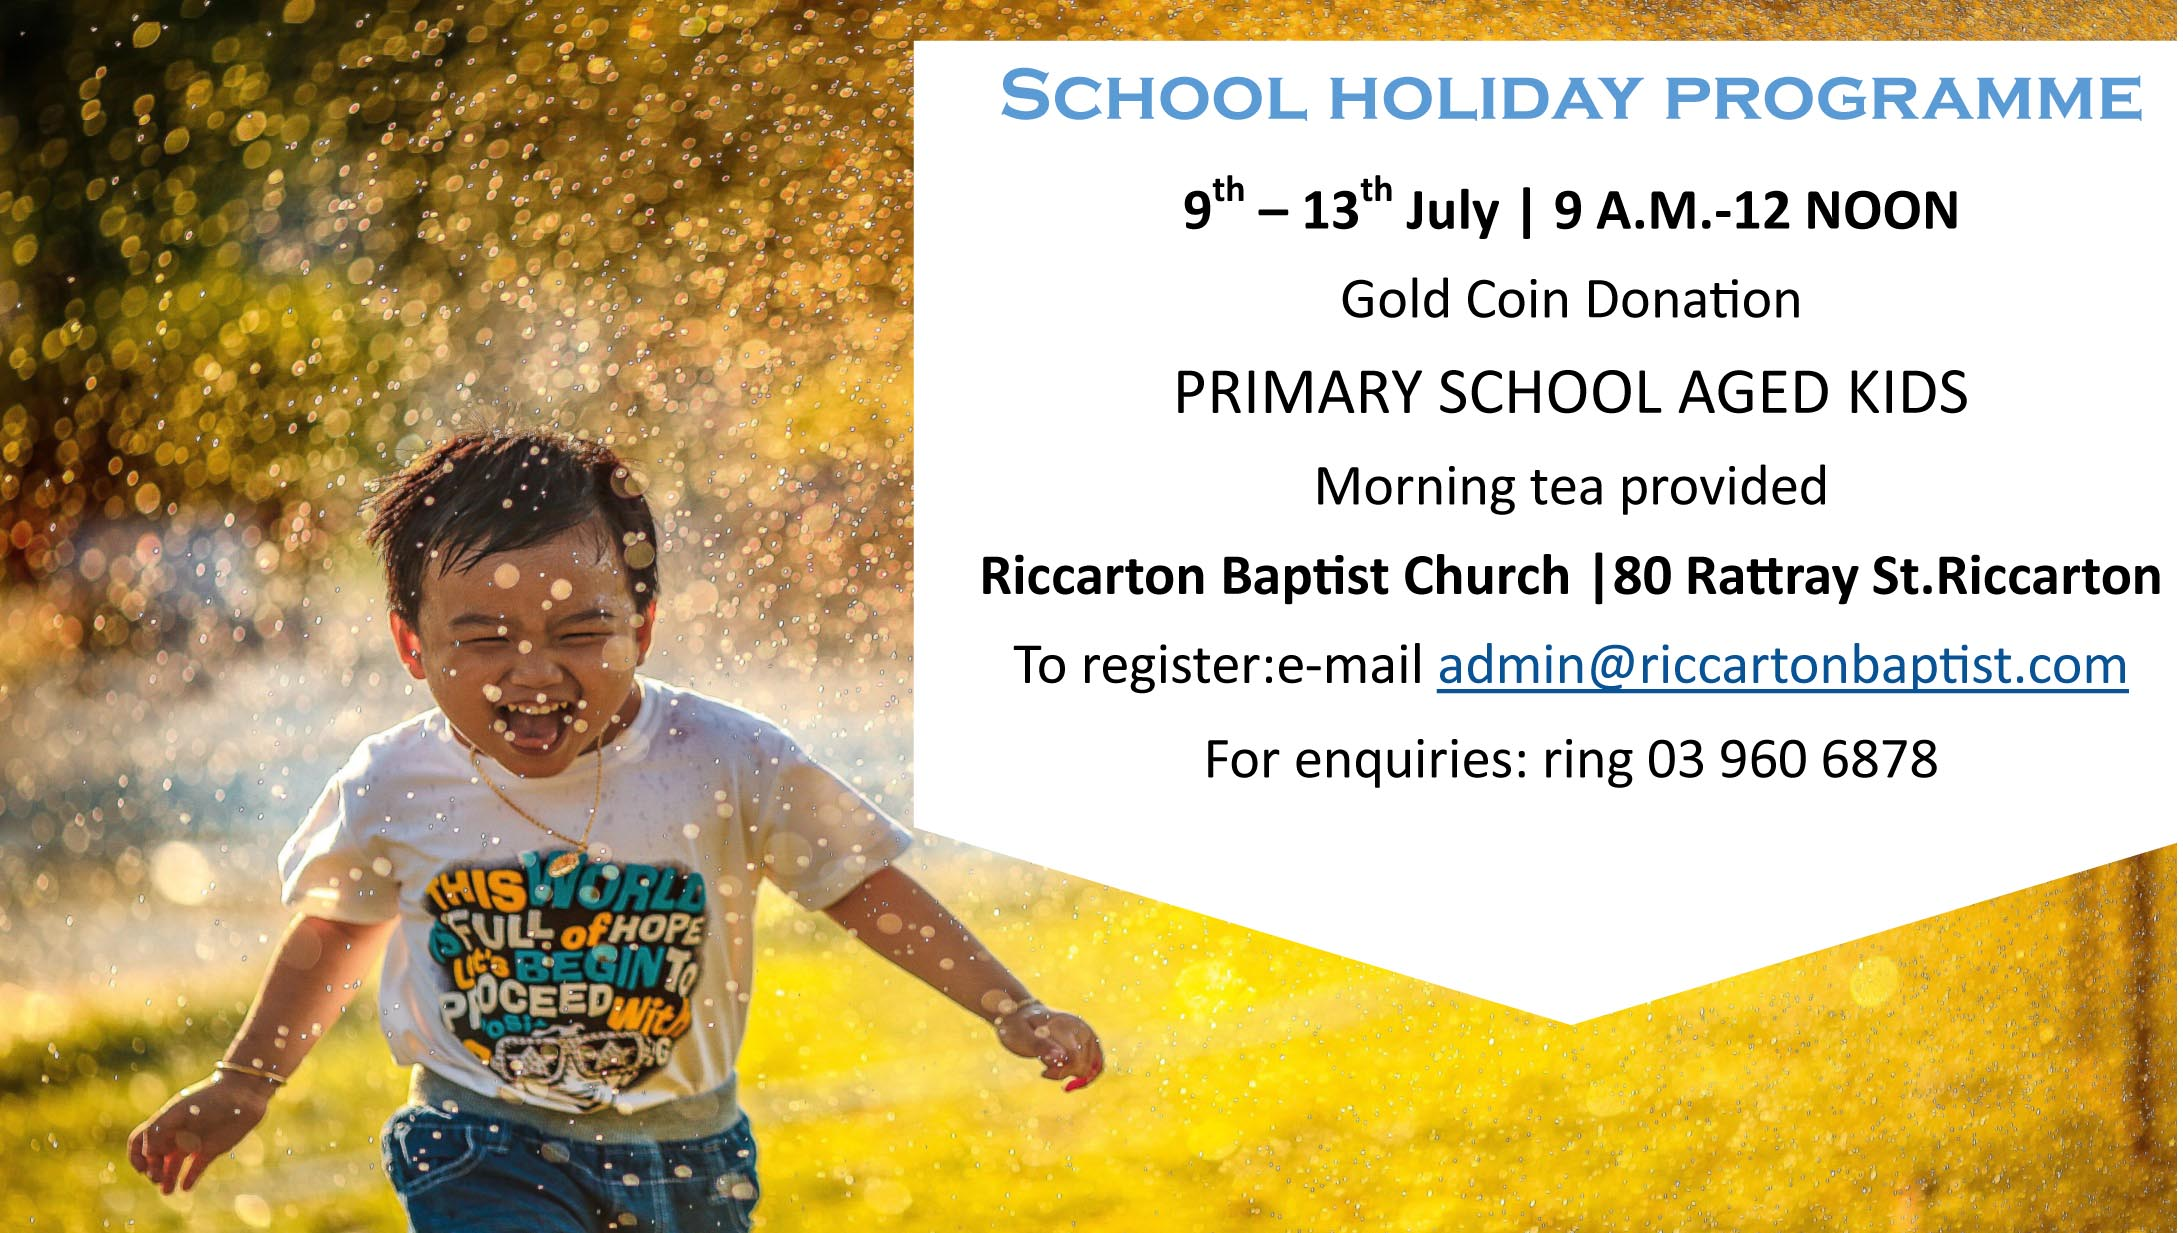 Holiday programme July 18